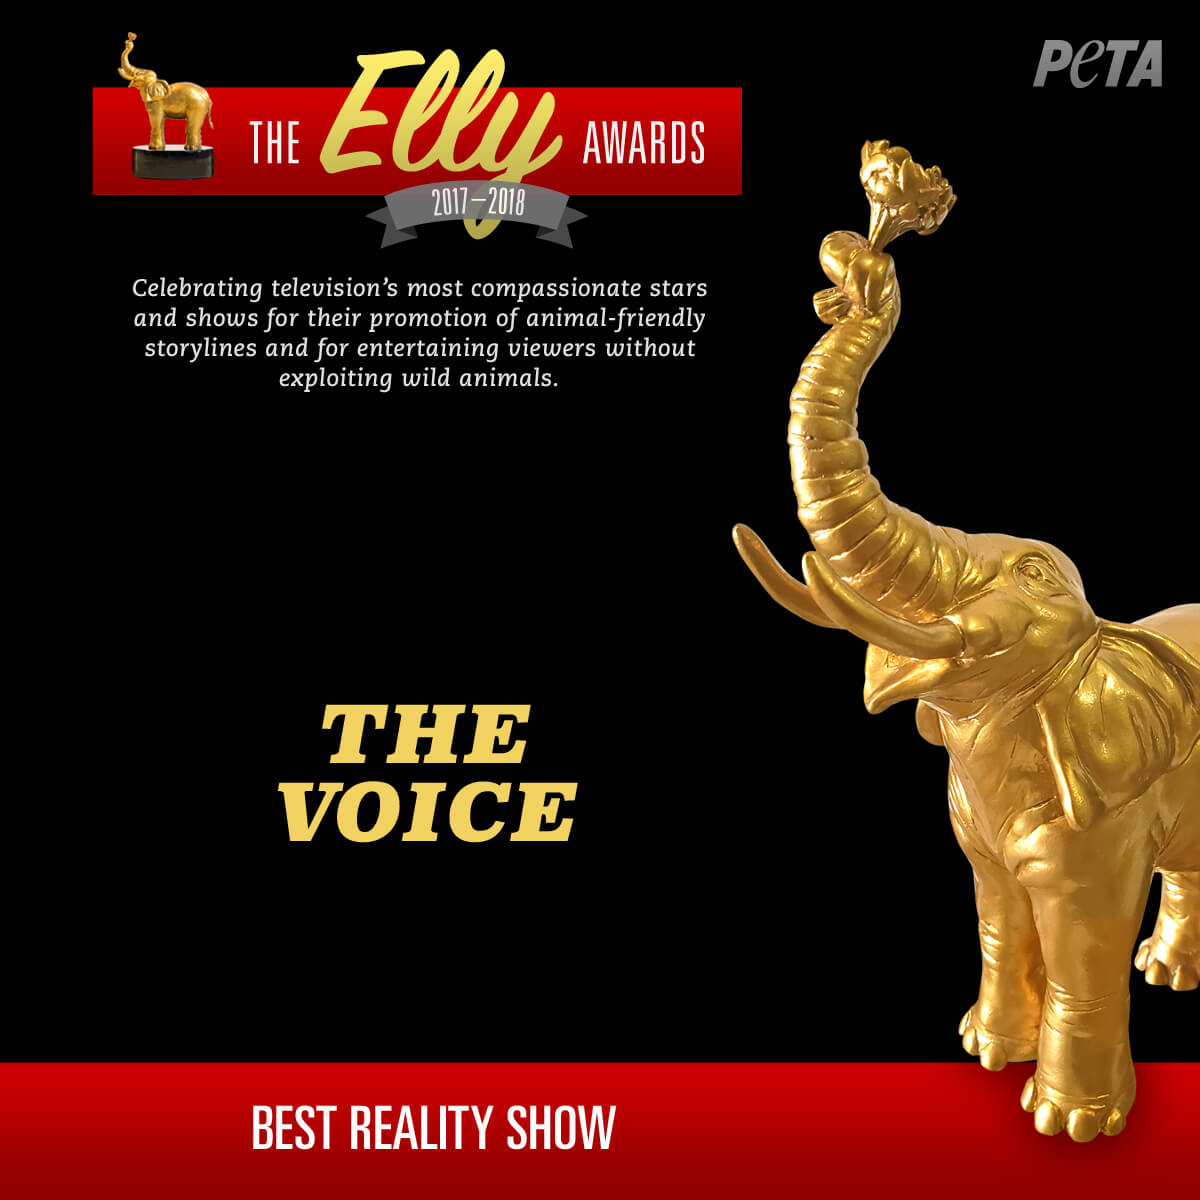 PETA Honors Compassion on TV With the Elly Awards | PETA